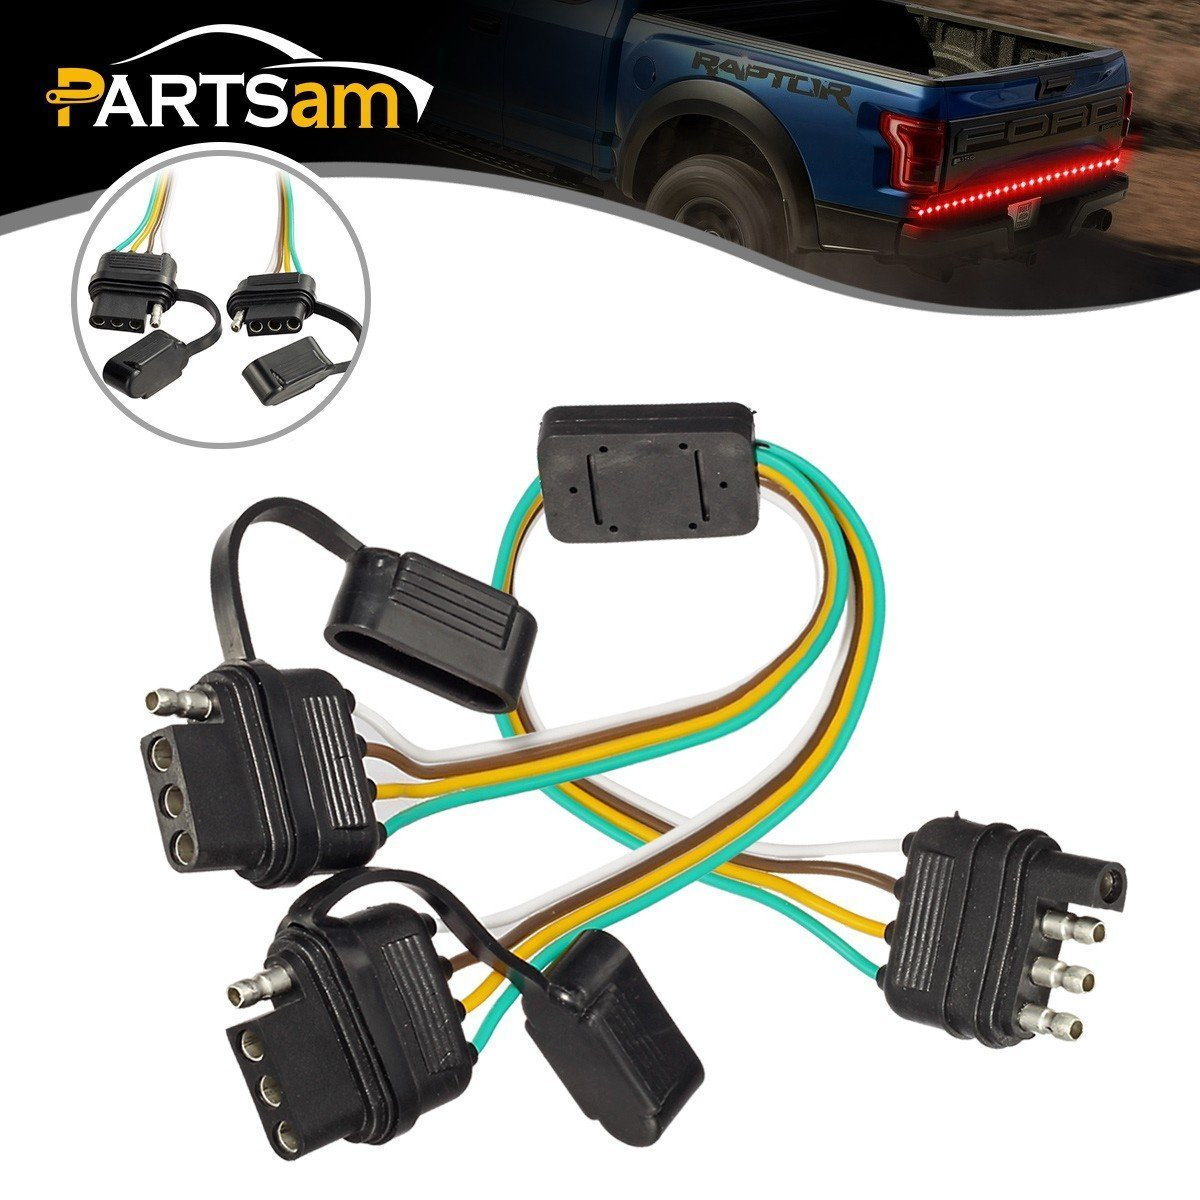 Partsam 4 Way Flat Y Splitter Trailer Light Wiring Plug Towpower 4wire Professional 4way Includes Bothnb Ends Adapters Led Strip Brake Turn Signal Tailgate Bar Universal Play Adapter